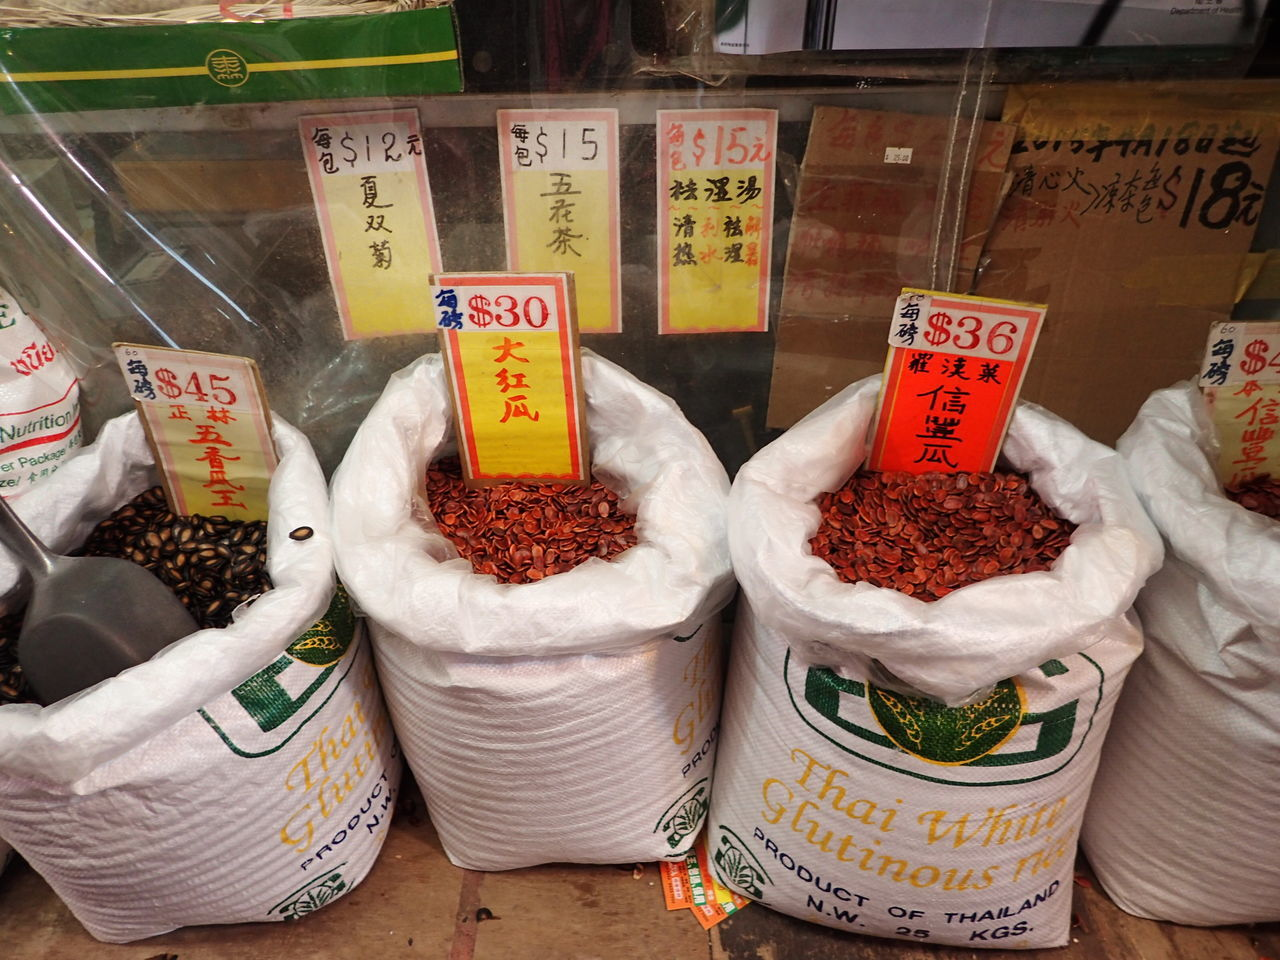 Edible Seeds Food Food And Drink For Sale Freshness Healthy Eating Label Local Business Market Market Stall Melon Seeds No People Nuts And Seeds Outdoors Price Tag Retail  Sack Seeds Shau Kei Wan Small Business Text Variation